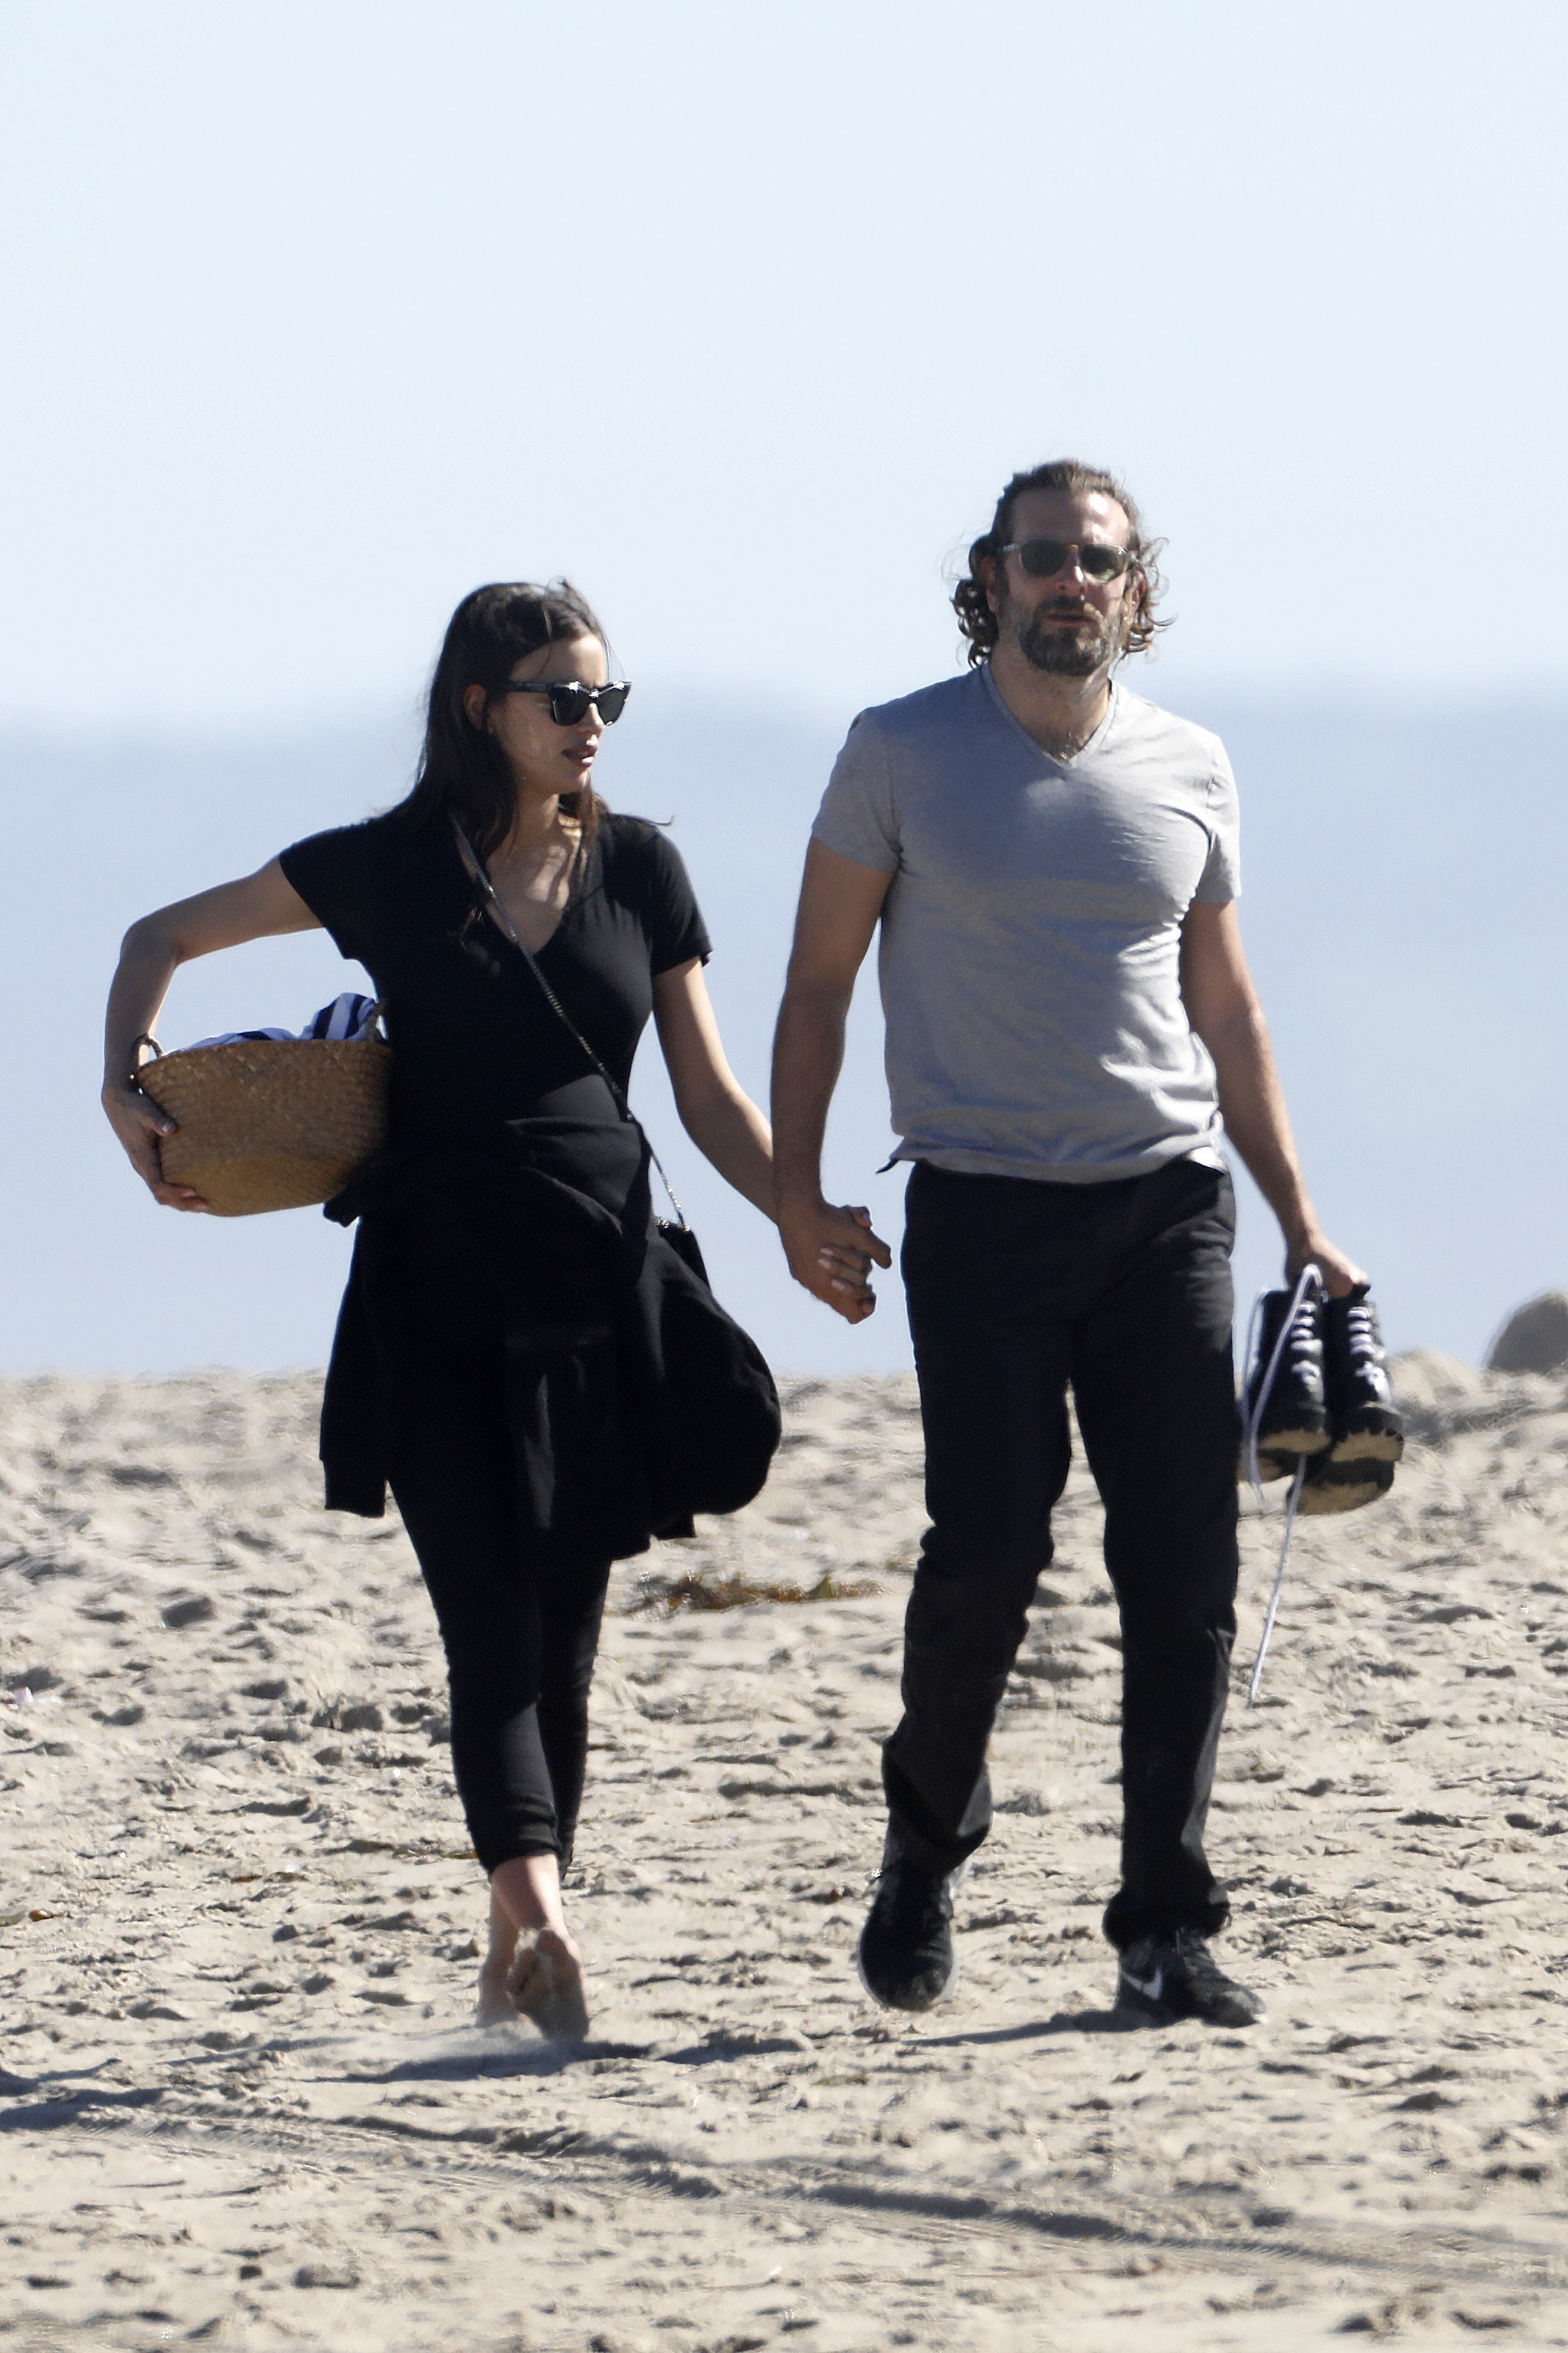 PREMIUM EXCLUSIVE Bradley Cooper And Pregnant Irina Shayk On Romantic V-Day Beach Picnic